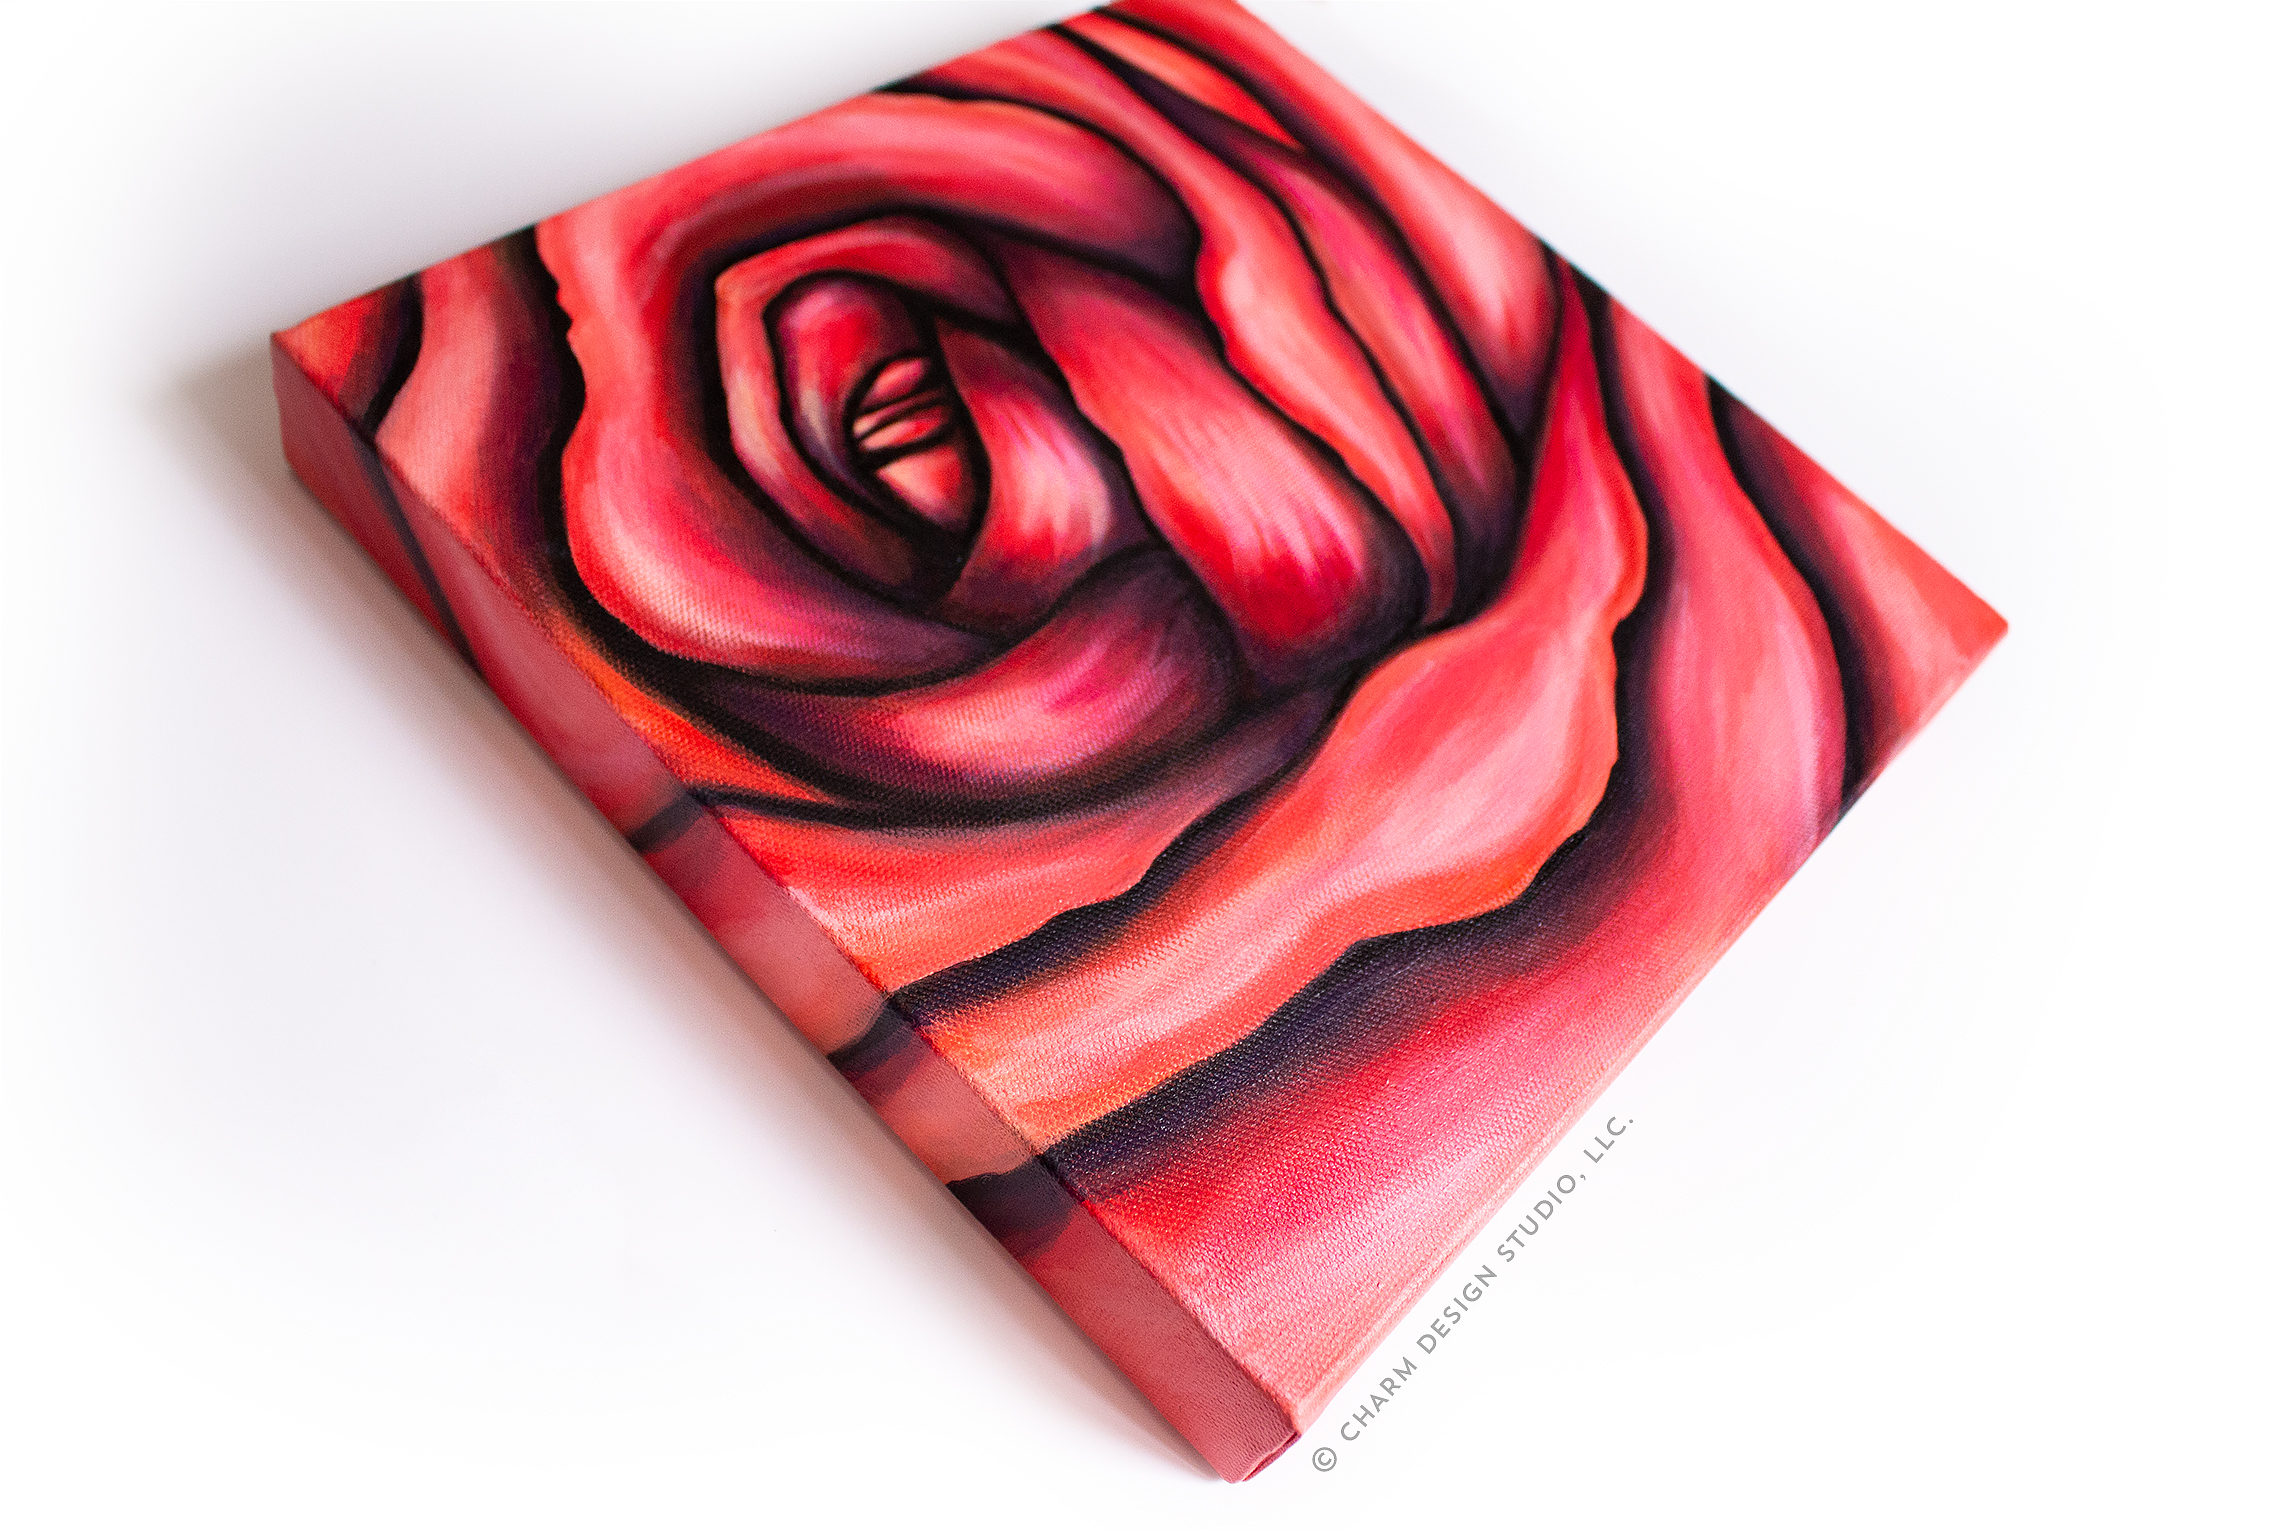 view of finished acrylic painting of a rose on canvas | image © Charm Design Studio, LLC.